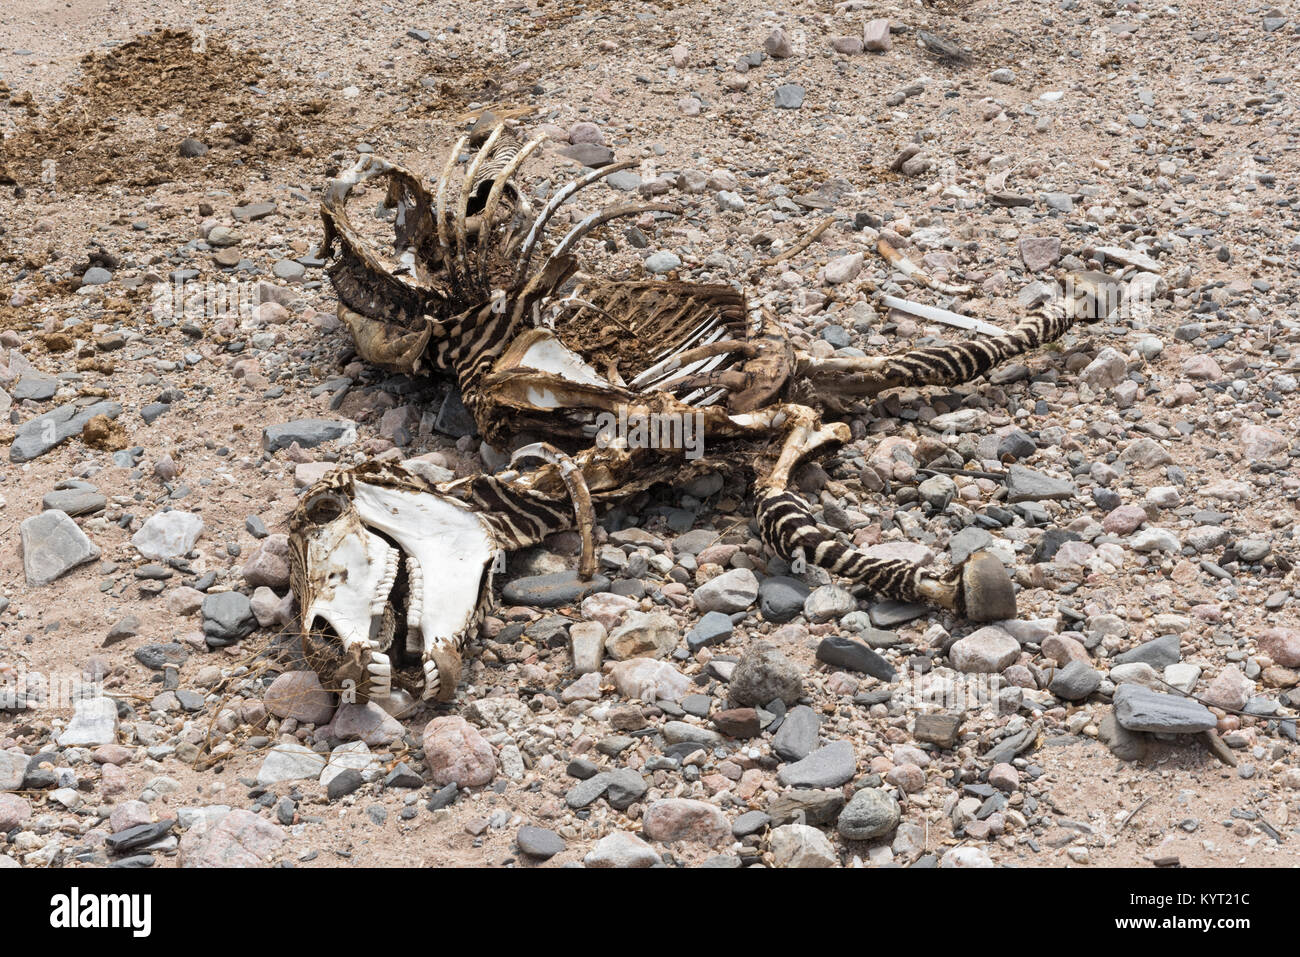 Skeleton of a zebra in a dry riverbed in Namibia - Stock Image